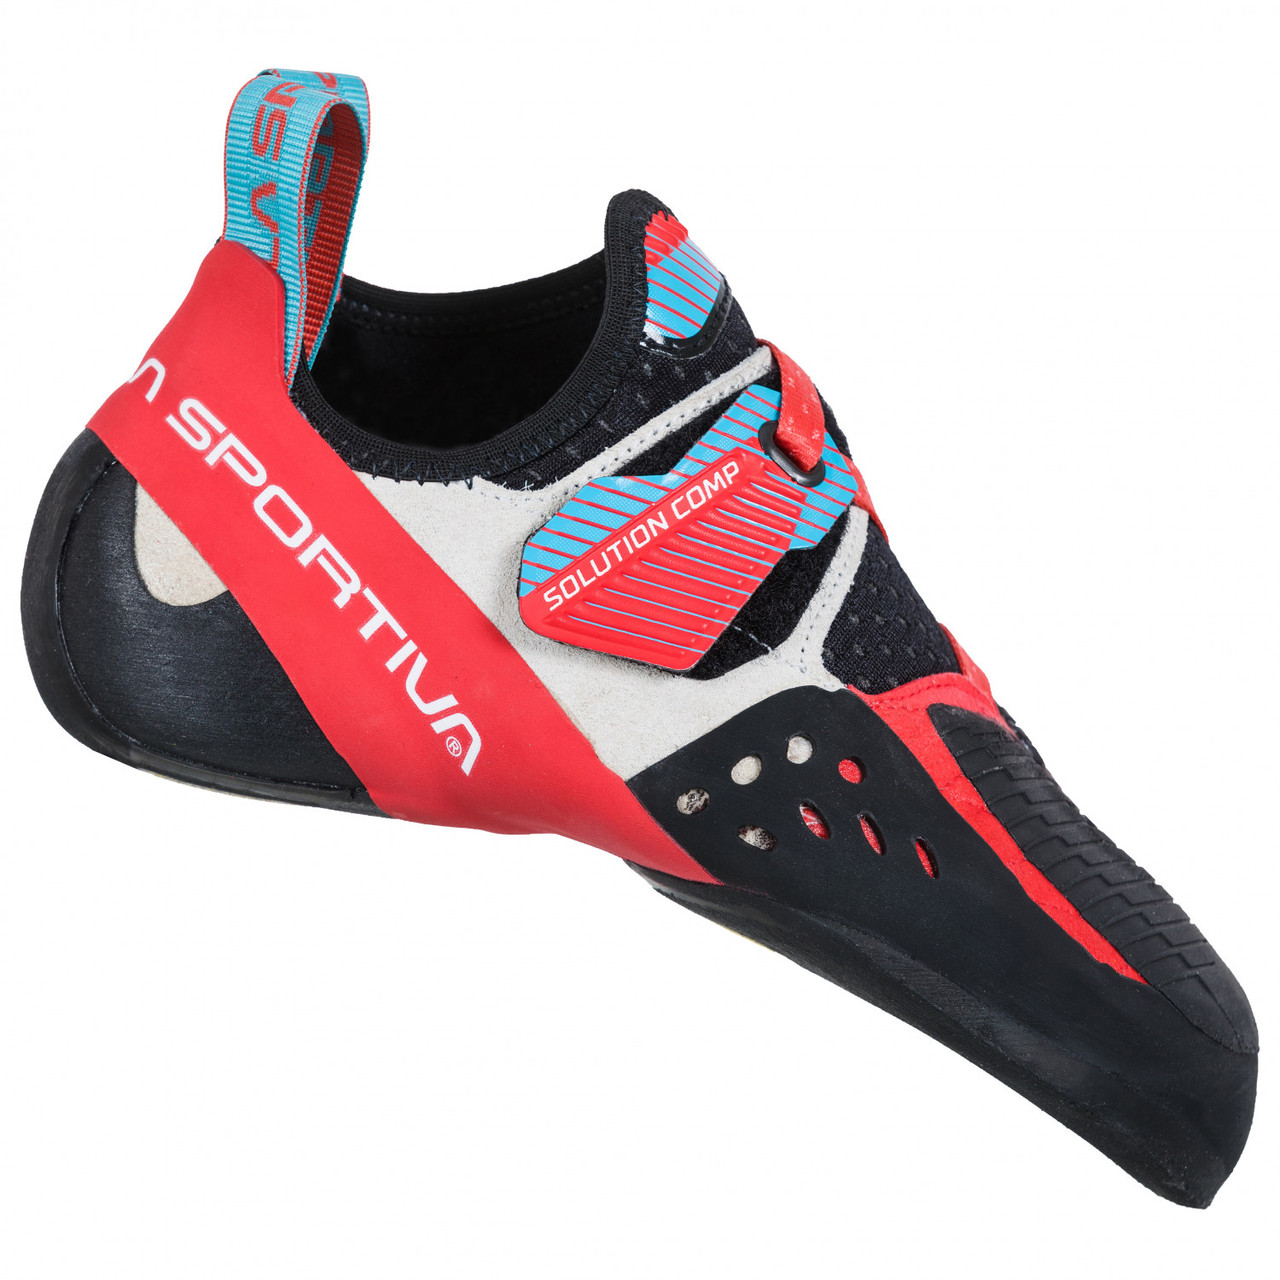 La Sportiva Solution Comp - Womens @ https://www.mountainmailorder.co.za/